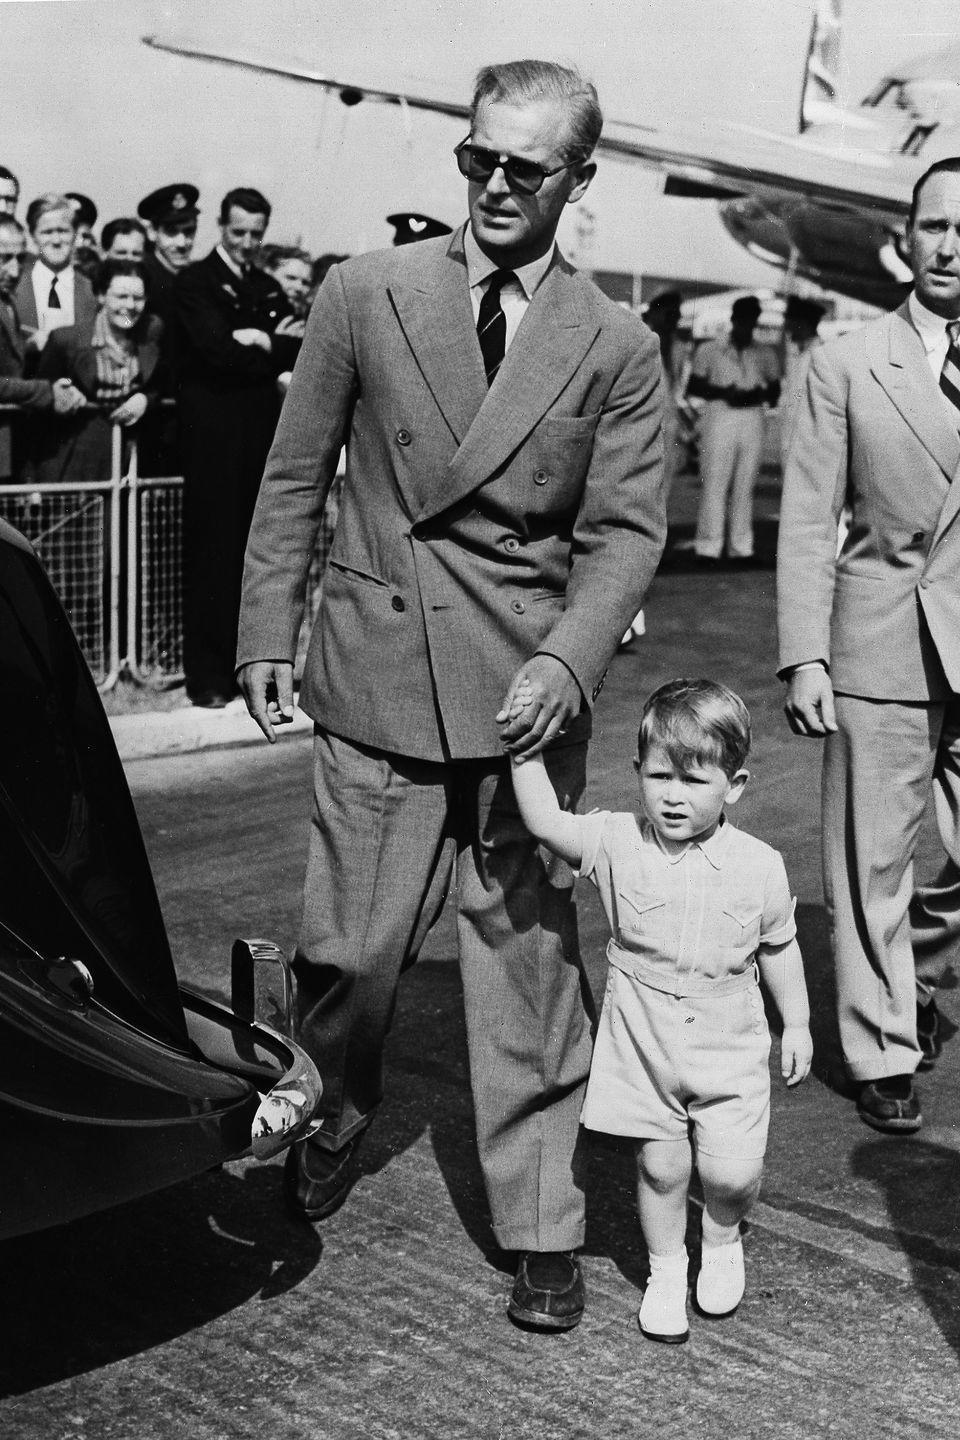 <p>Walking hand-in-hand with his father, Prince Phillip, at the London airport upon the family's return from Malta.</p>